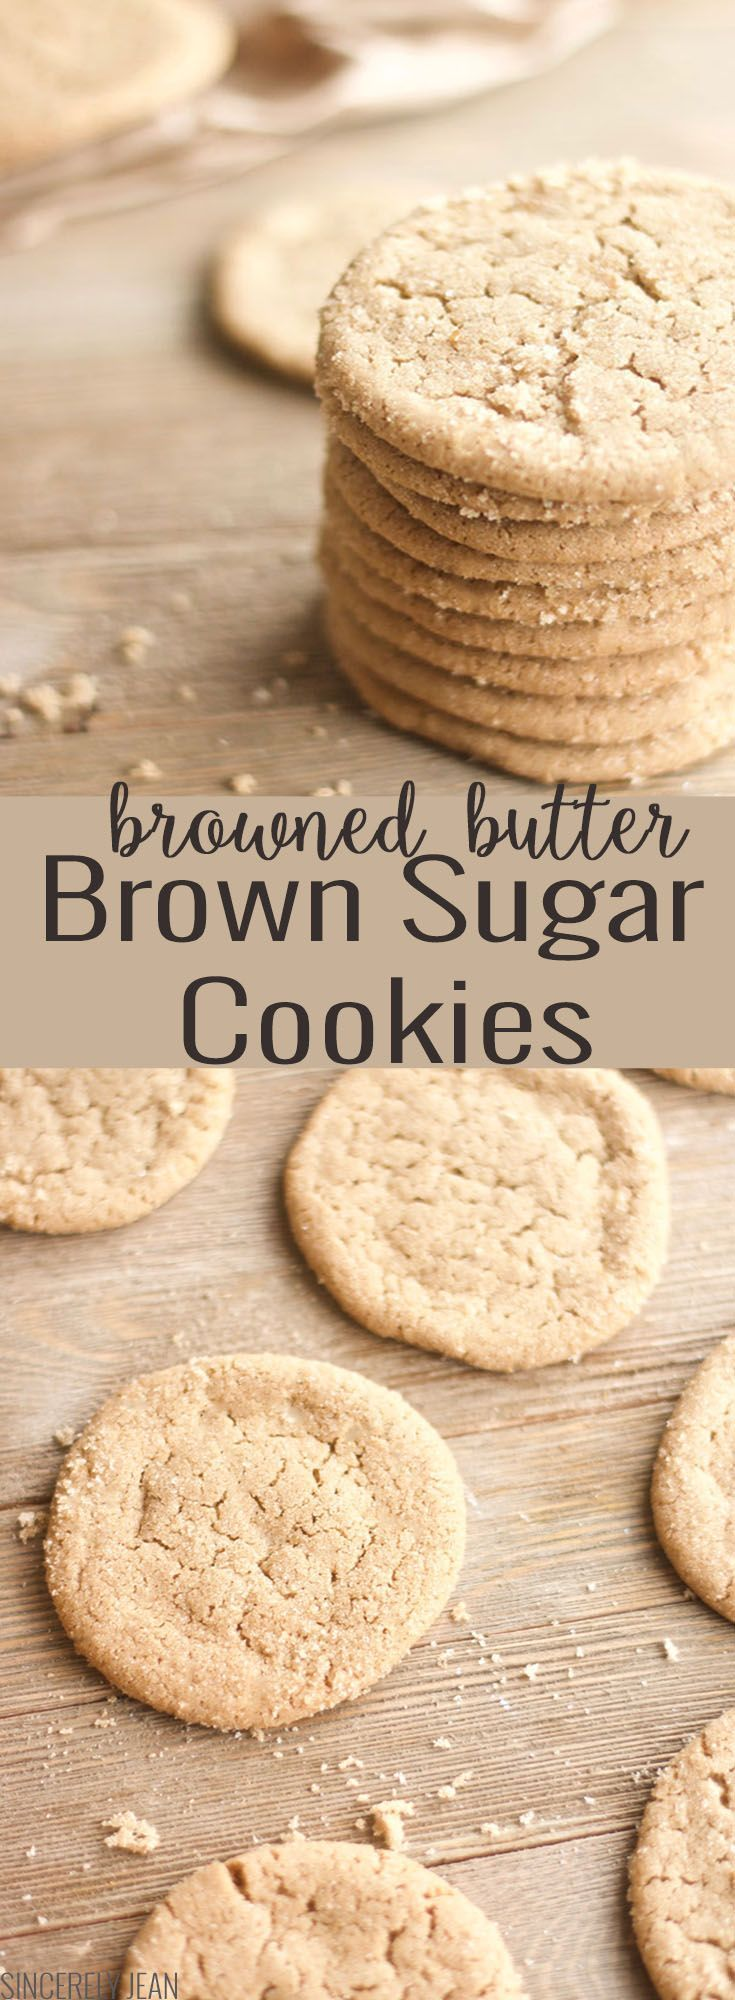 Brown Butter Brown Sugar Cookies - homemade, recipe, moist, easy, quick, chewy